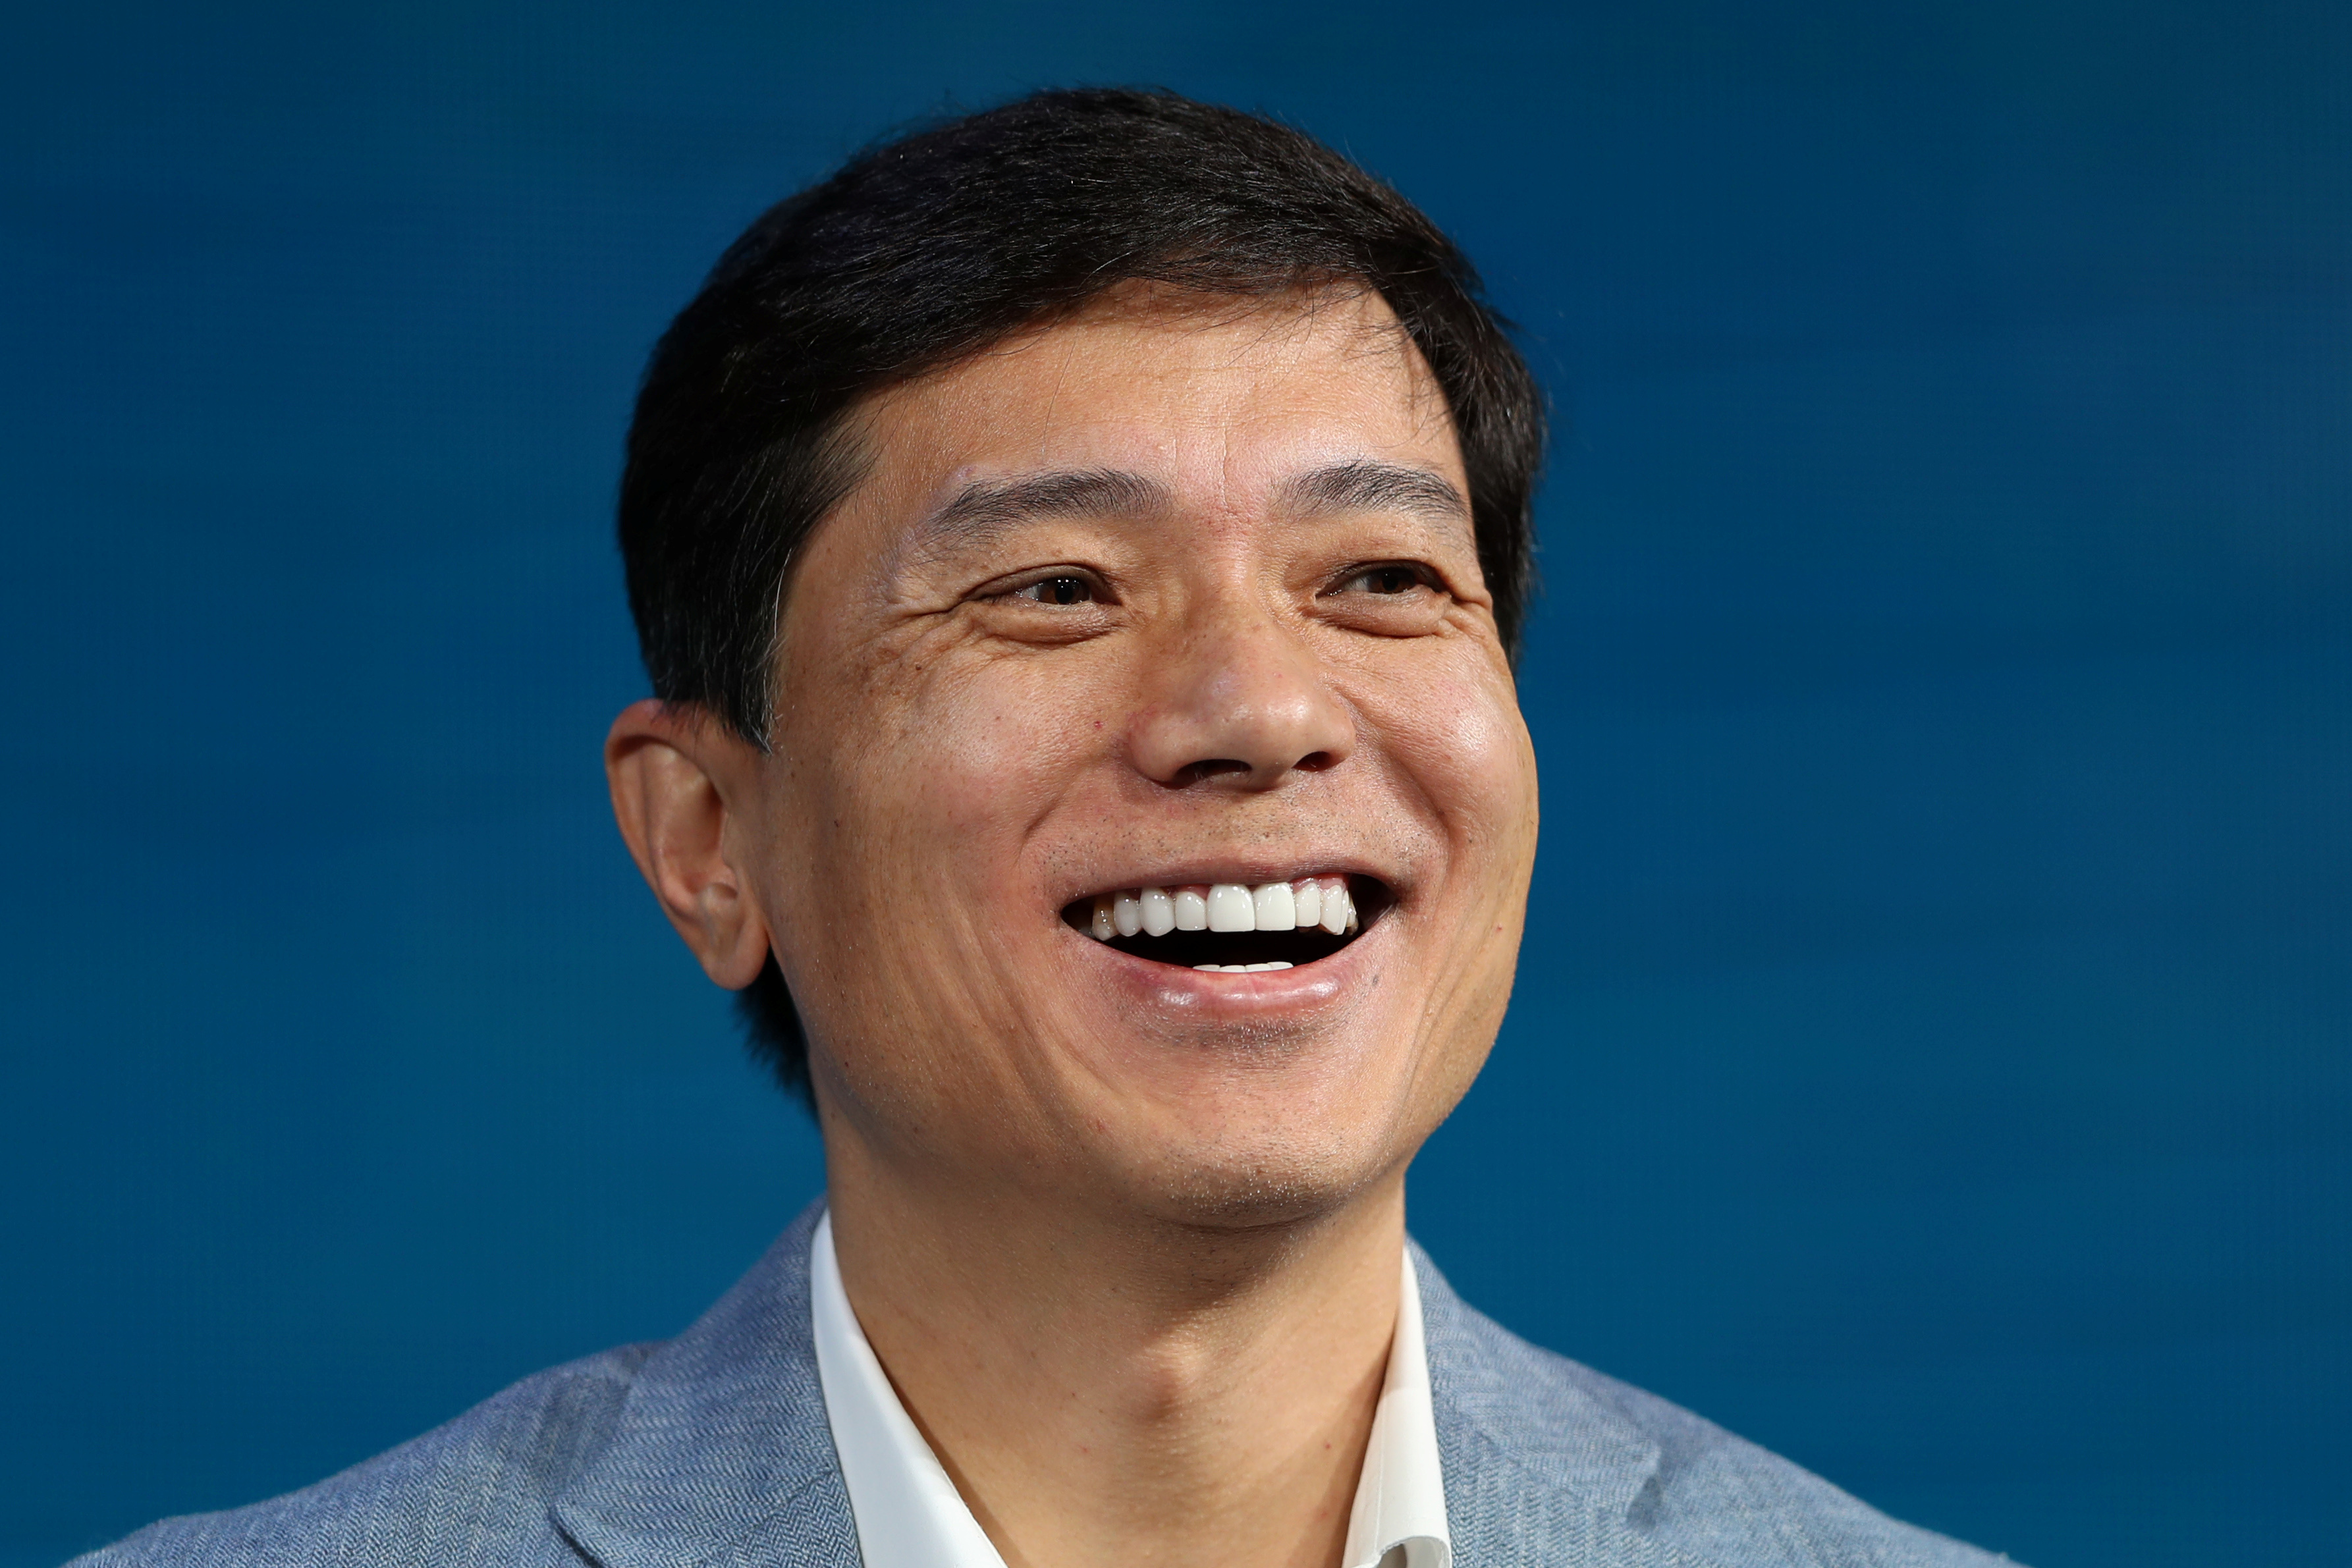 Robin Li, co-founder, chairman and chief executive officer of Baidu, smile during the Wall Street Journal Digital conference in Laguna Beach, California, U.S. October 17, 2017.